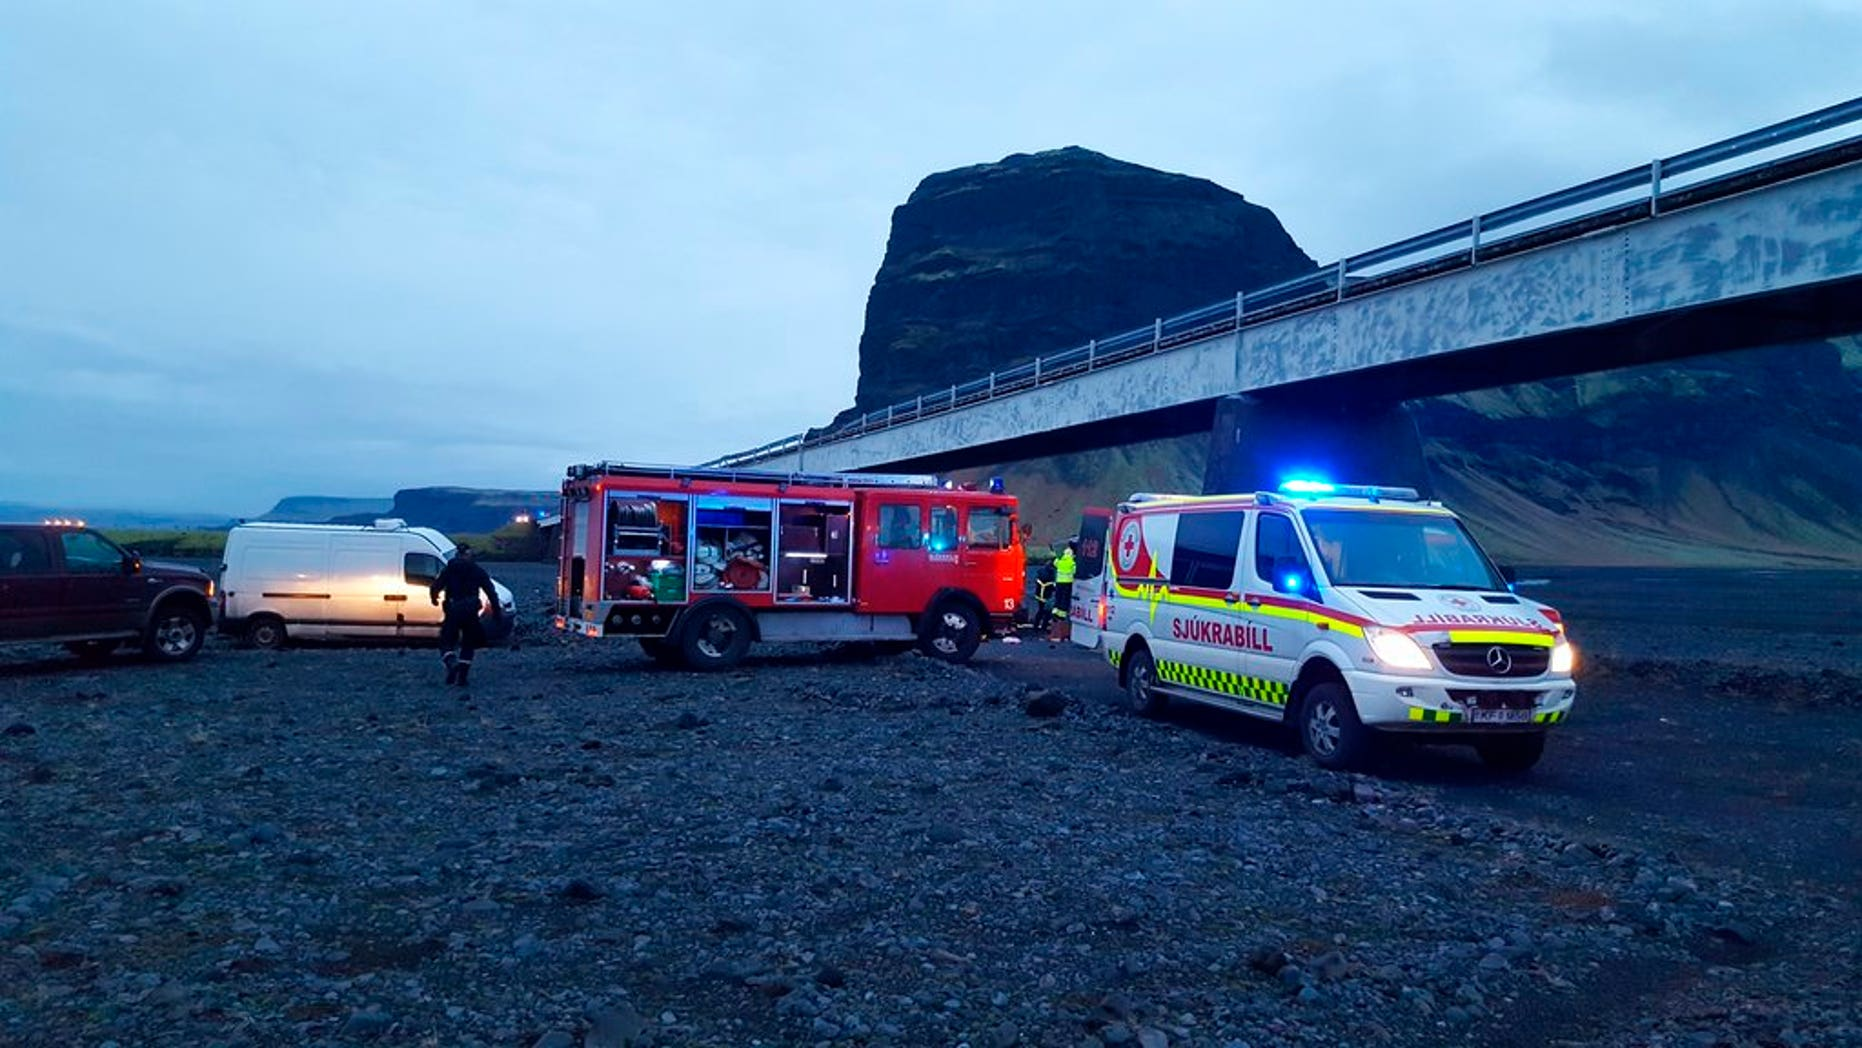 An SUV carrying seven members of a British family plunged off a high bridge Thursday in Iceland, killing three people and critically injuring the others, authorities said.